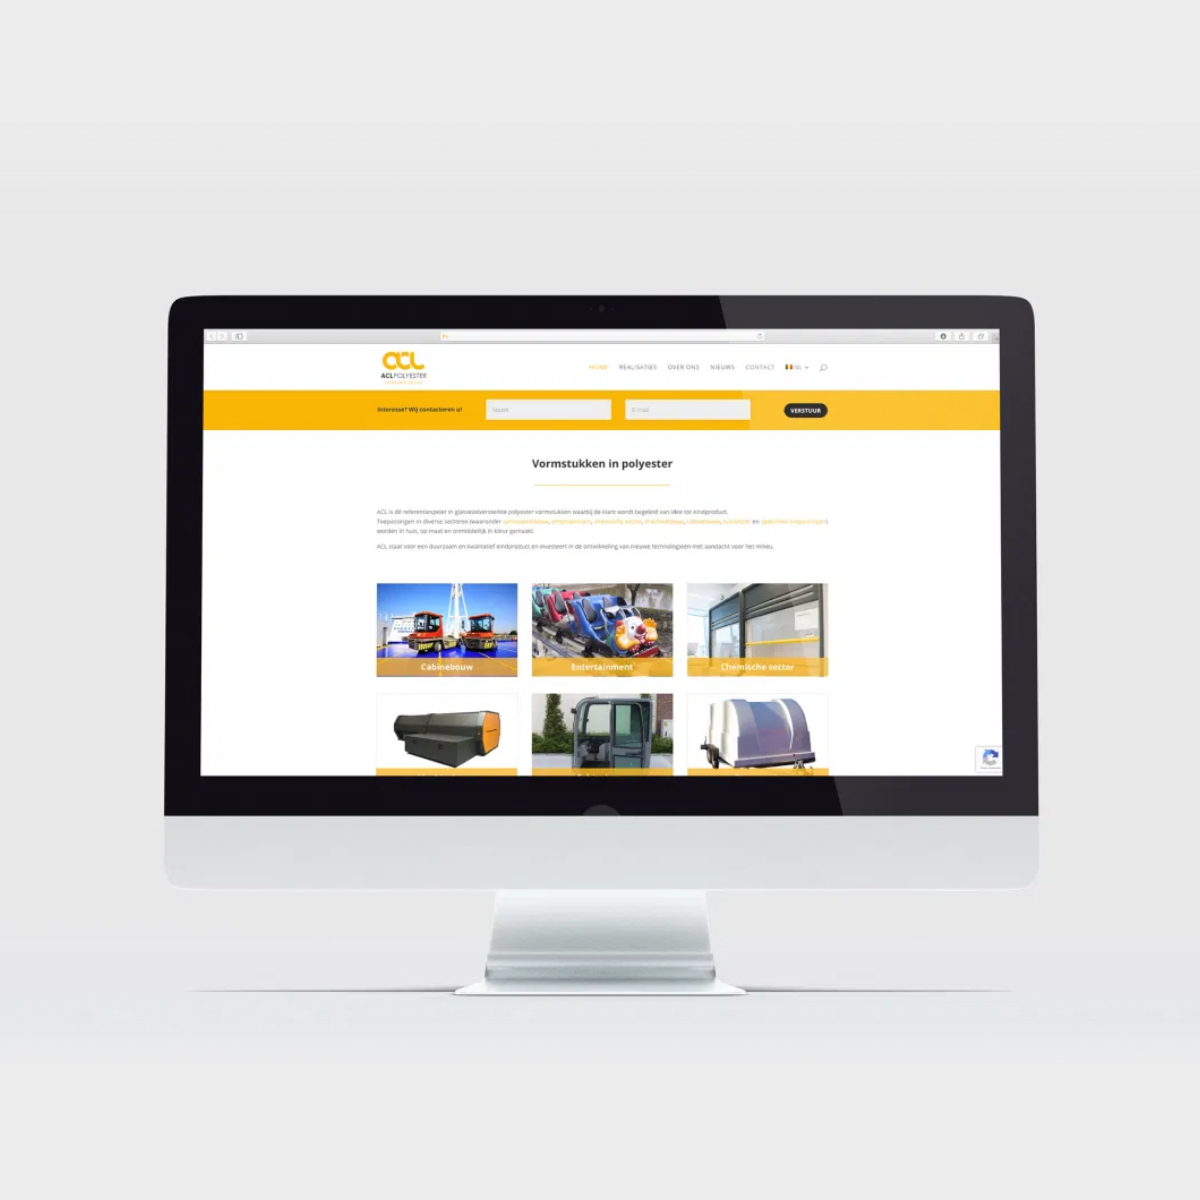 ACL Polyester website ontwerp